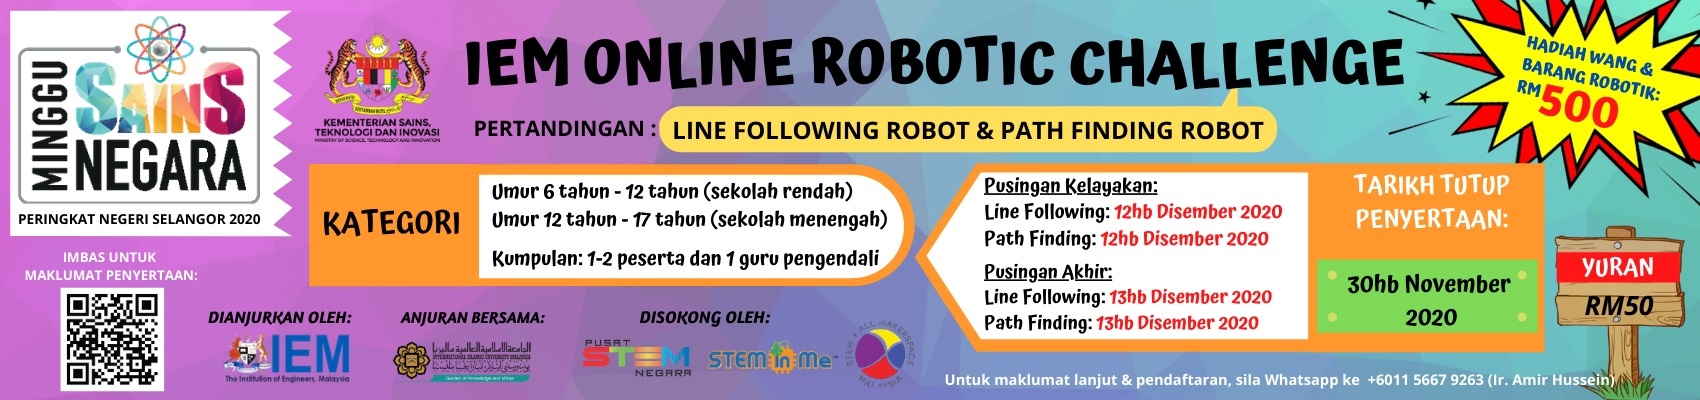 IEM Online Robotic Challenge 2020 for Primary and Secondary School Students